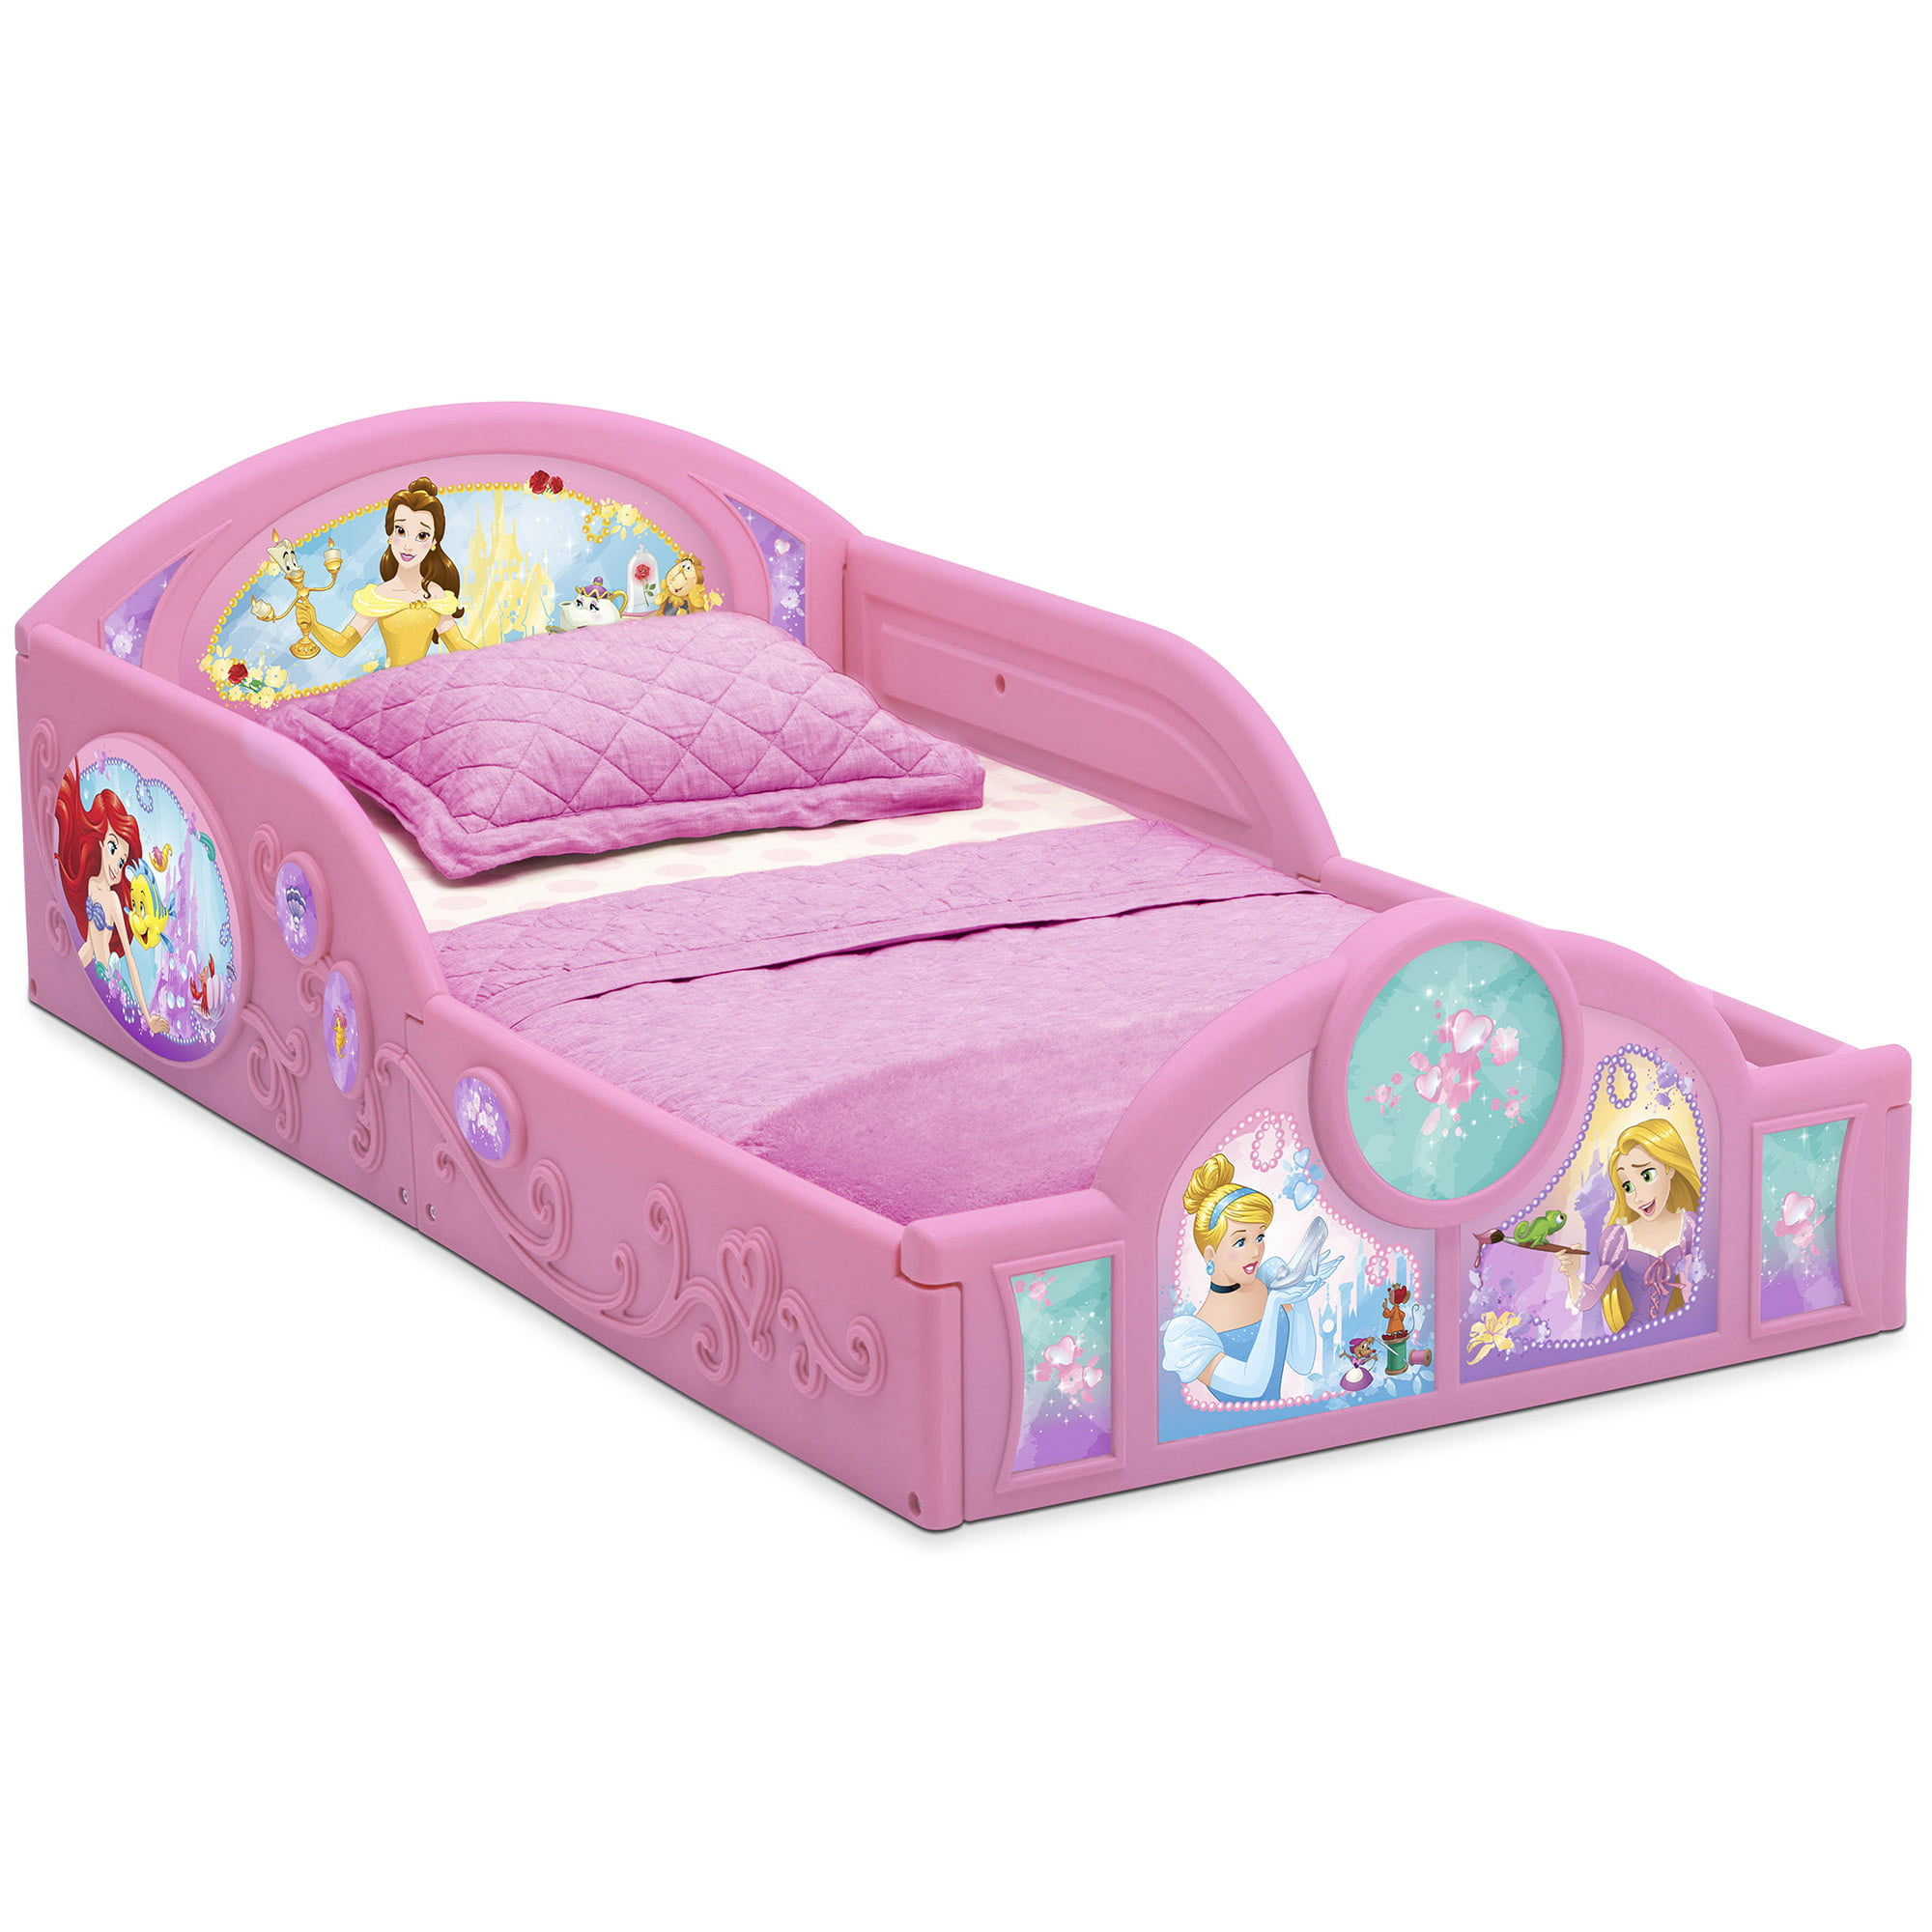 Picture of: Disney Princess Plastic Sleep And Play Toddler Bed By Delta Children Walmart Com Walmart Com